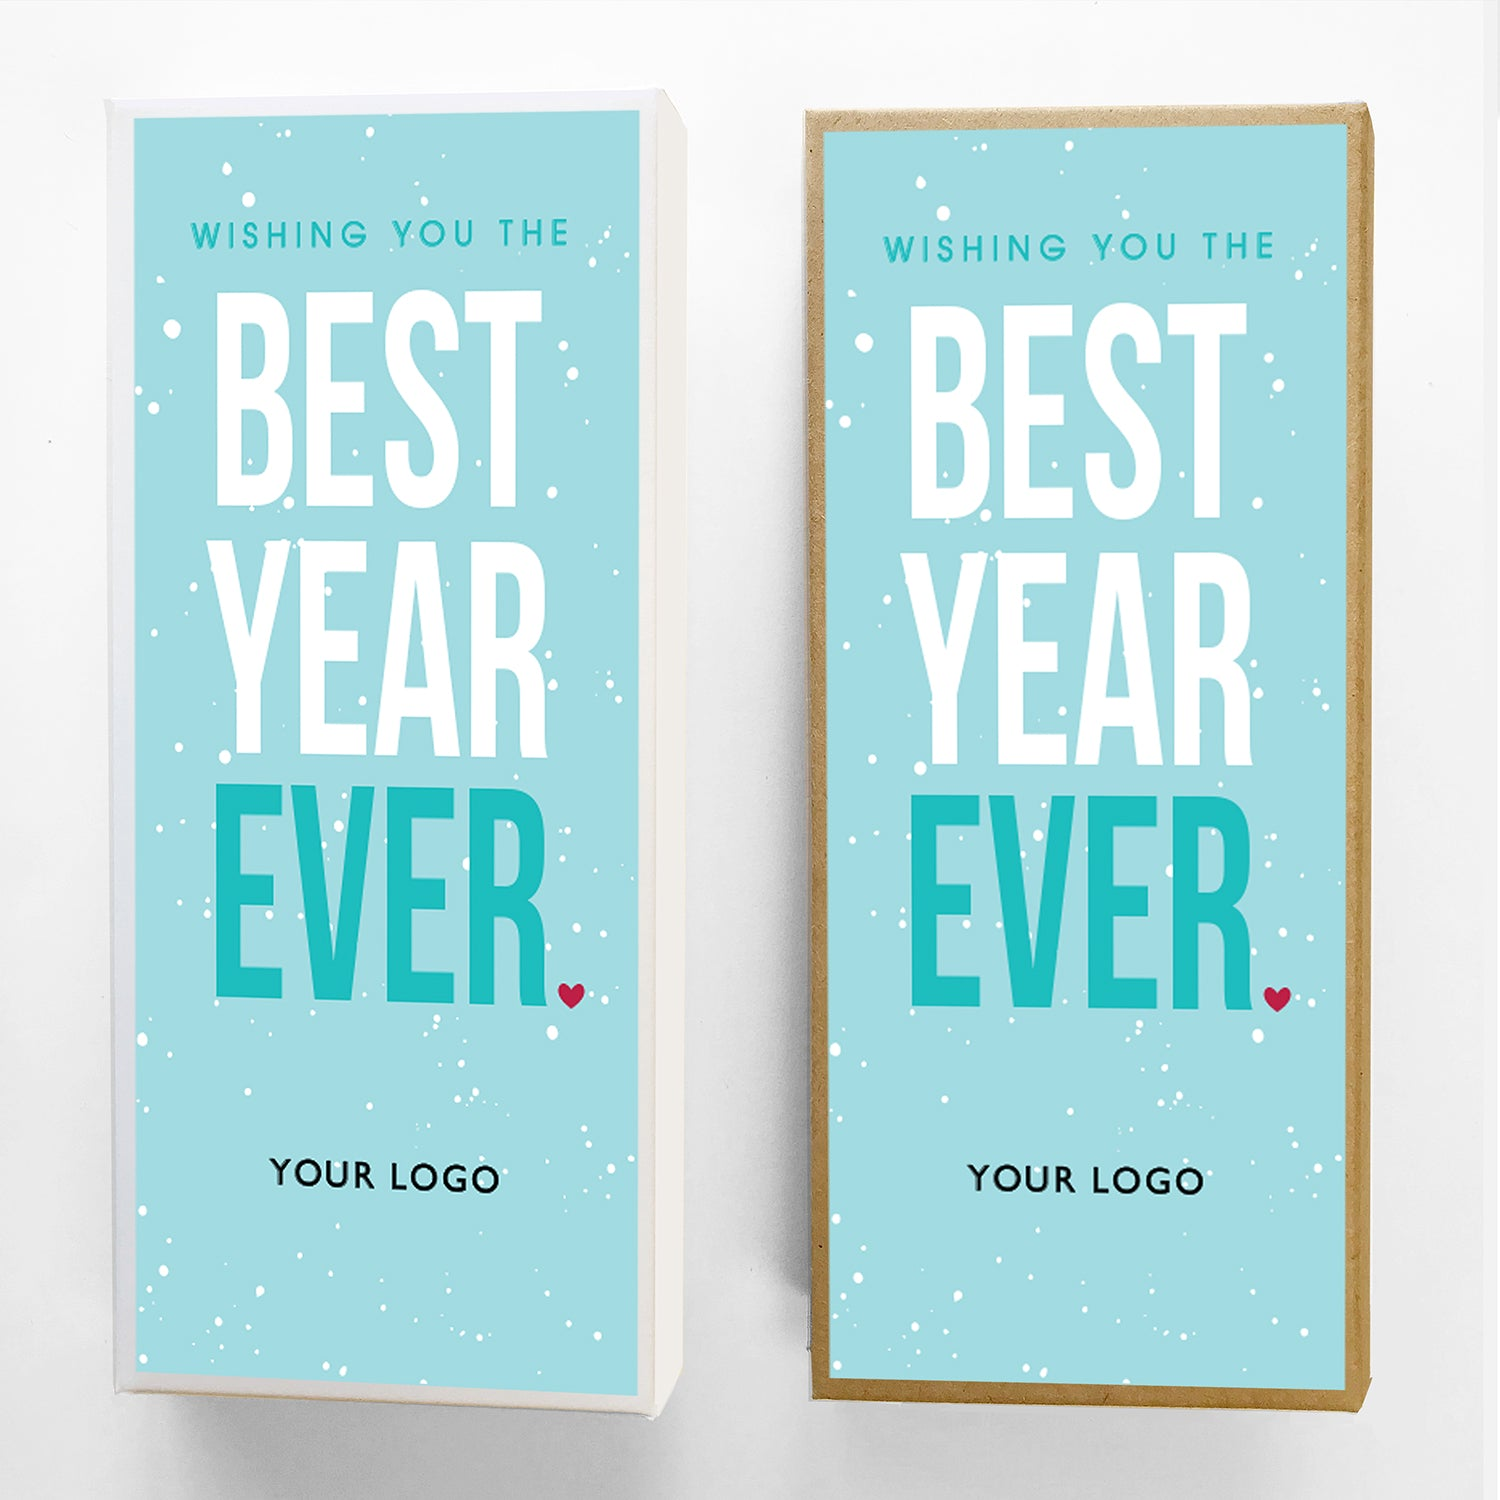 Best Year Ever Custom Caramel New Years Gift Box Large